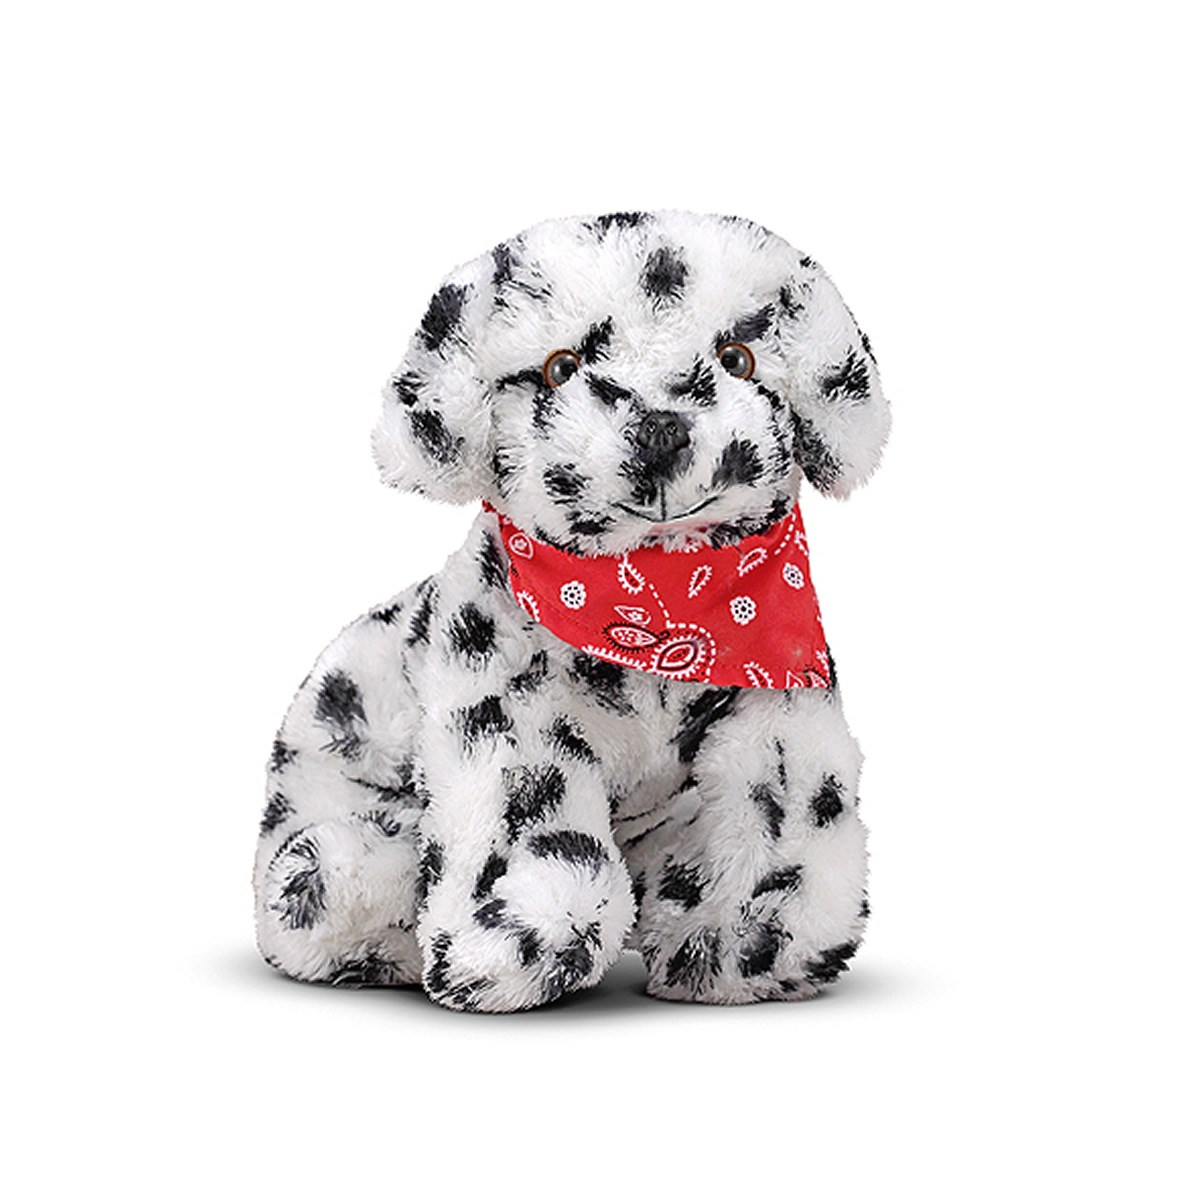 Melissa & Doug Blaze Dalmatian Puppy Dog Stuffed Animal